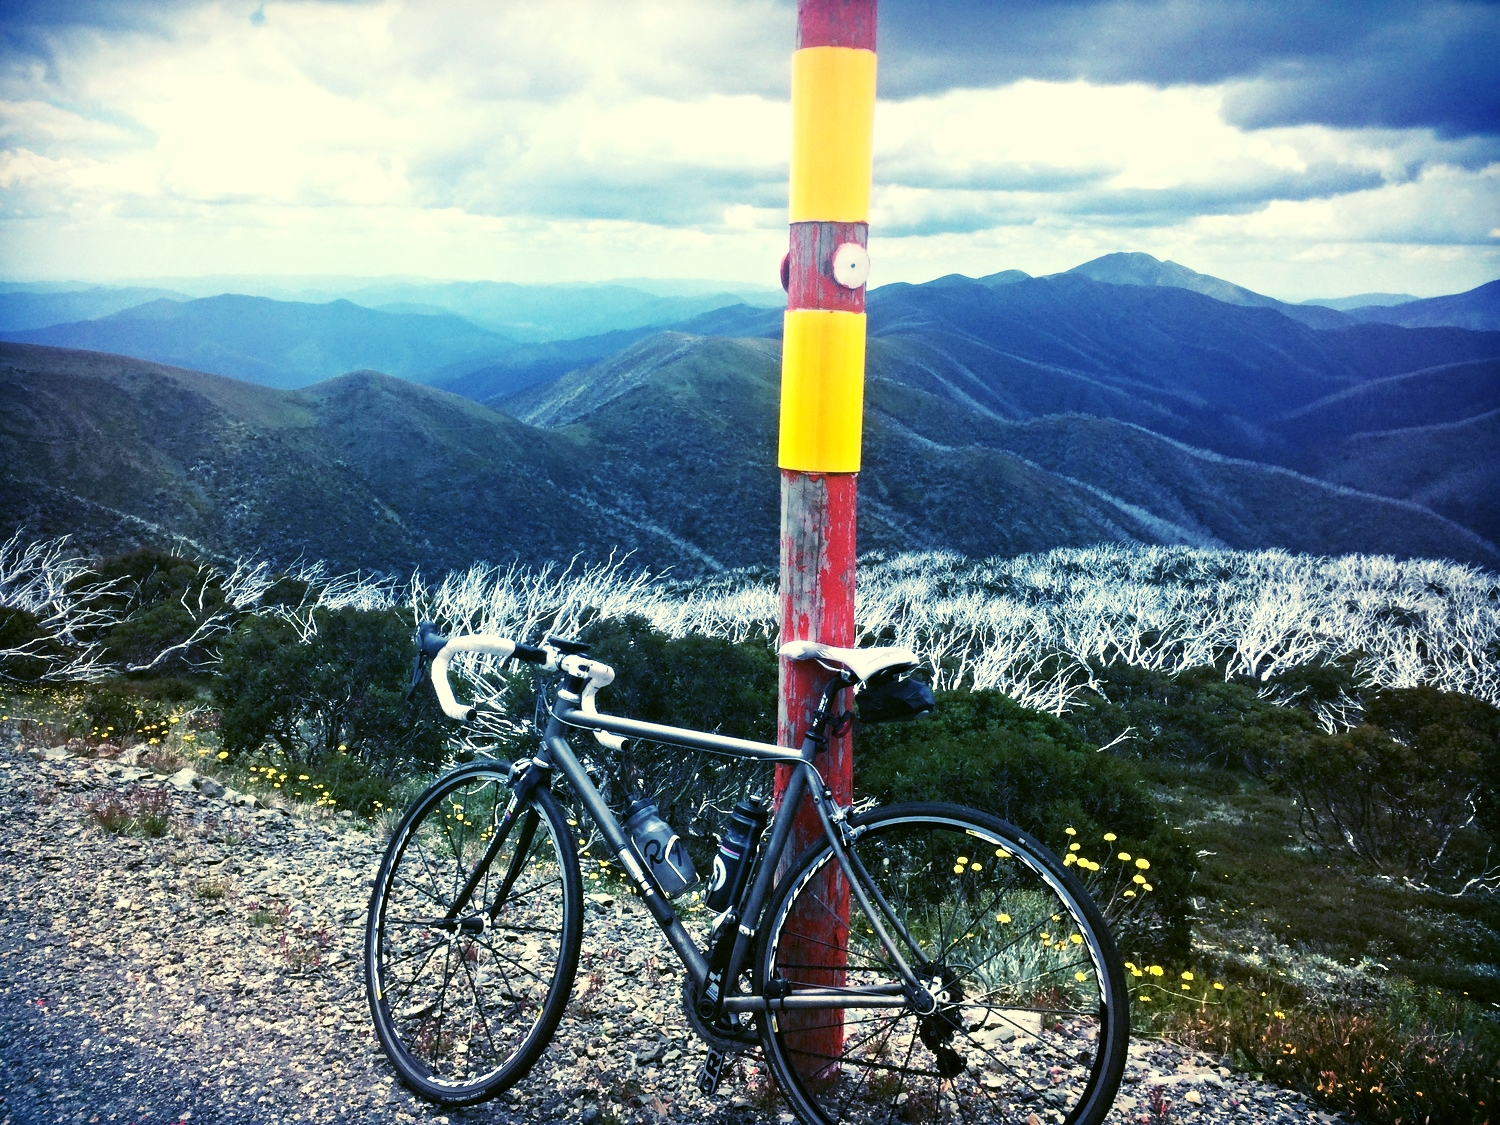 The view over the Victorian Alps from near Mt Hotham Summit.